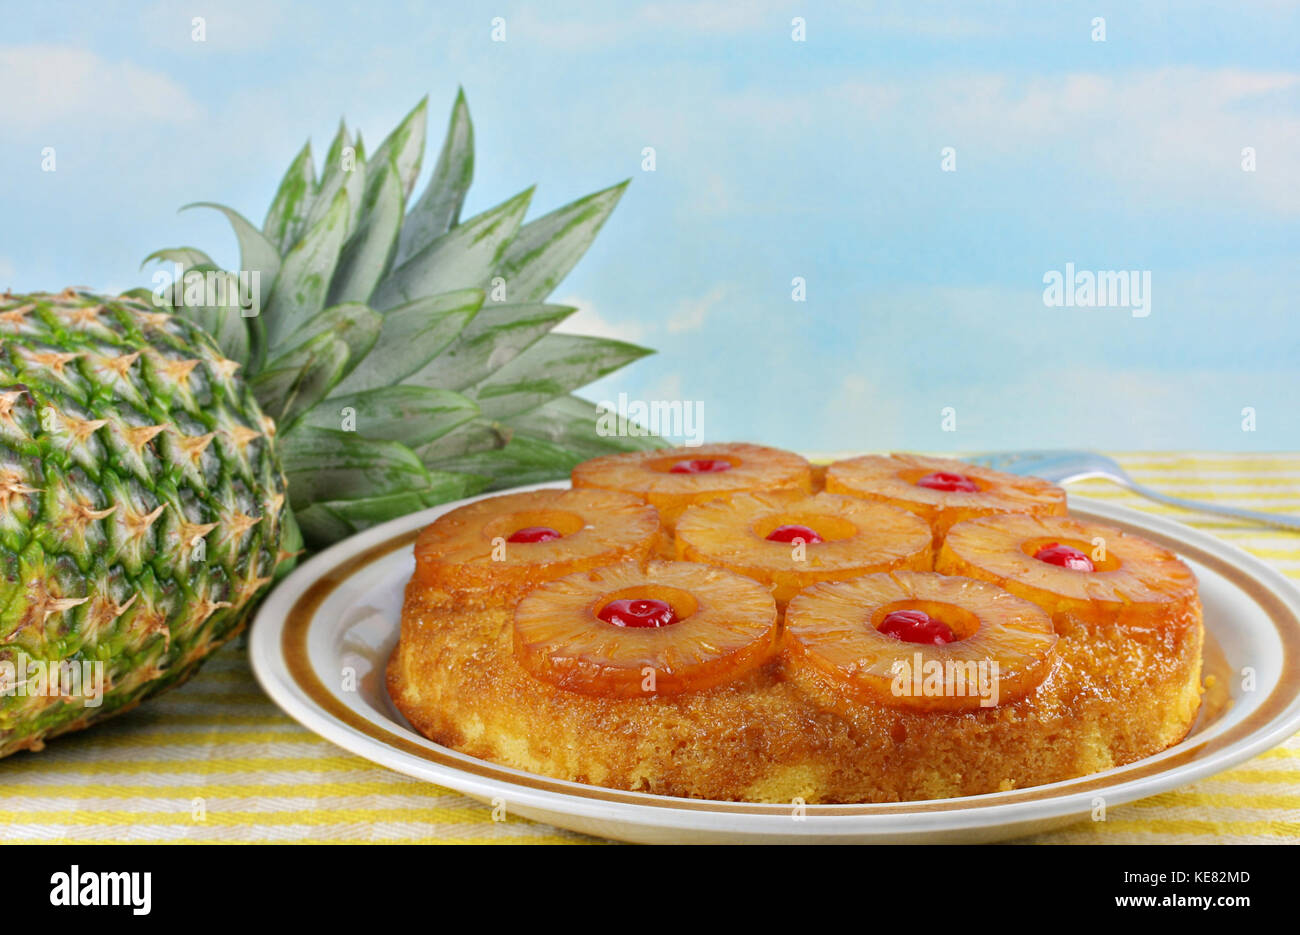 how to cut a fresh whole pineapple